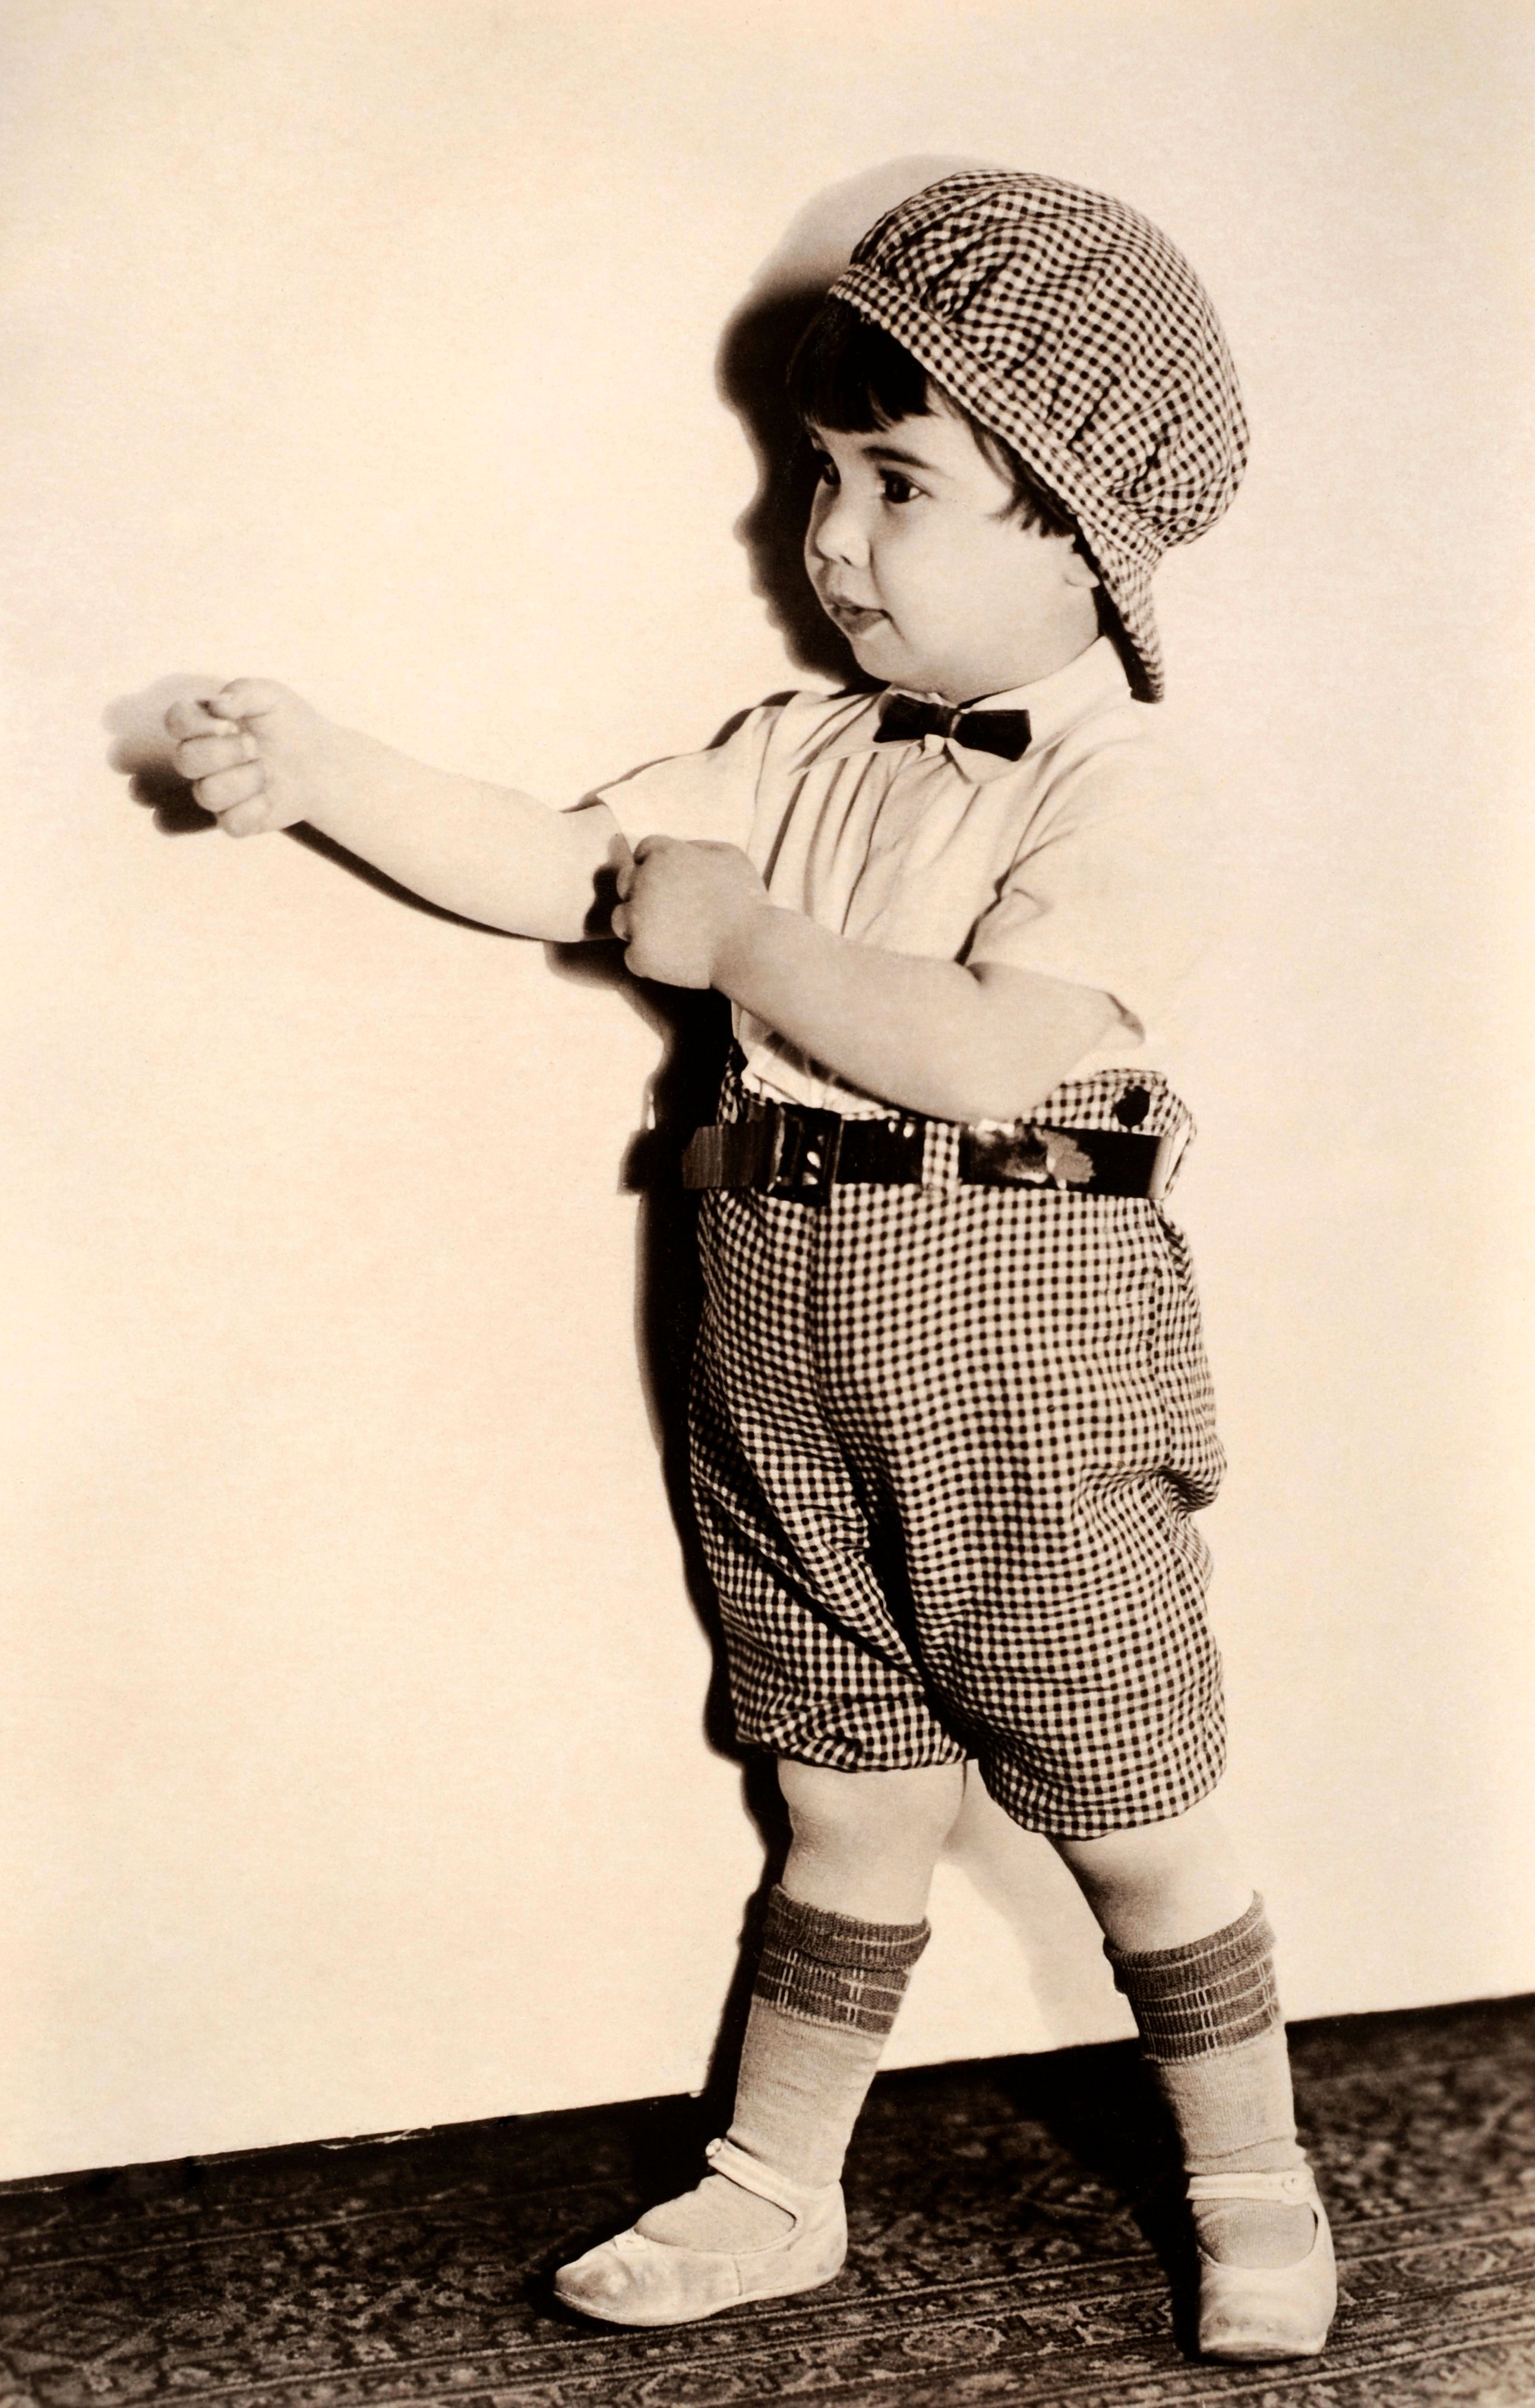 Baby Peggy Montgomery circa 1923 | Photo: Popperfoto/Getty Images